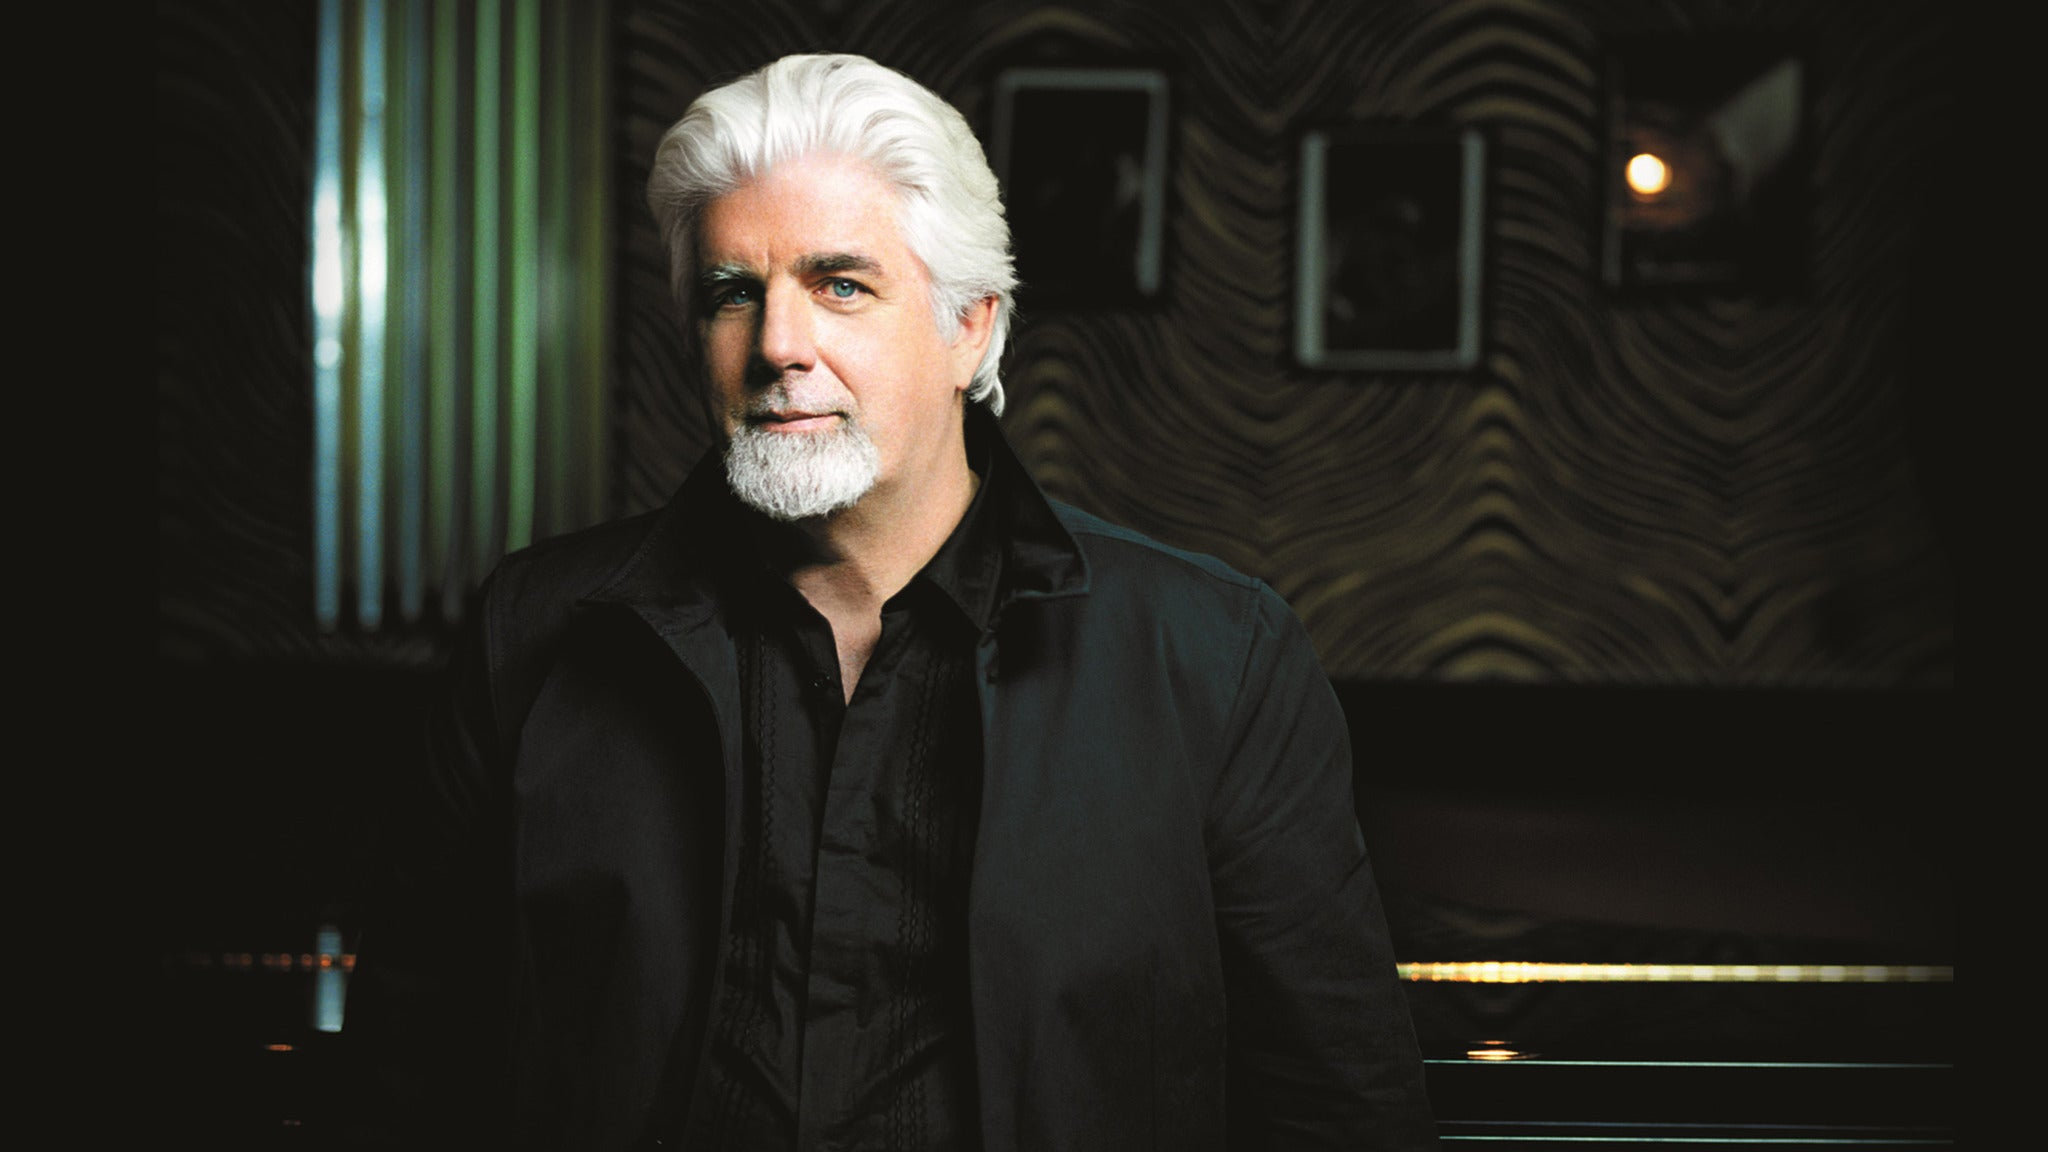 Michael McDonald at iWireless Center